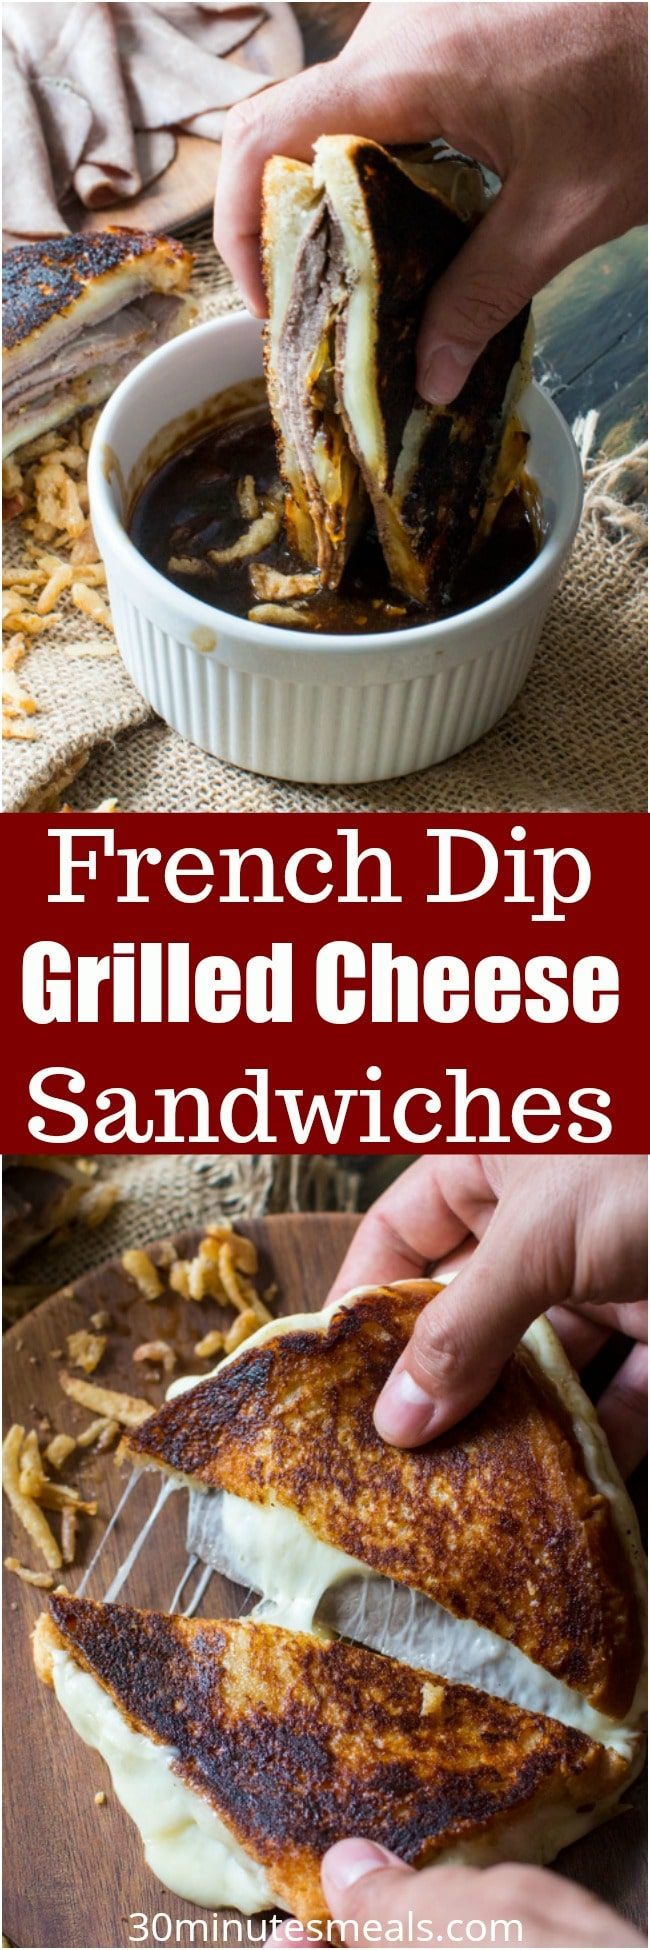 French Dip Grilled Cheese Sandwich is perfect for dinner, parties or game nights! Serve with the dipping sauce on the side for the ultimate, amazing flavor!